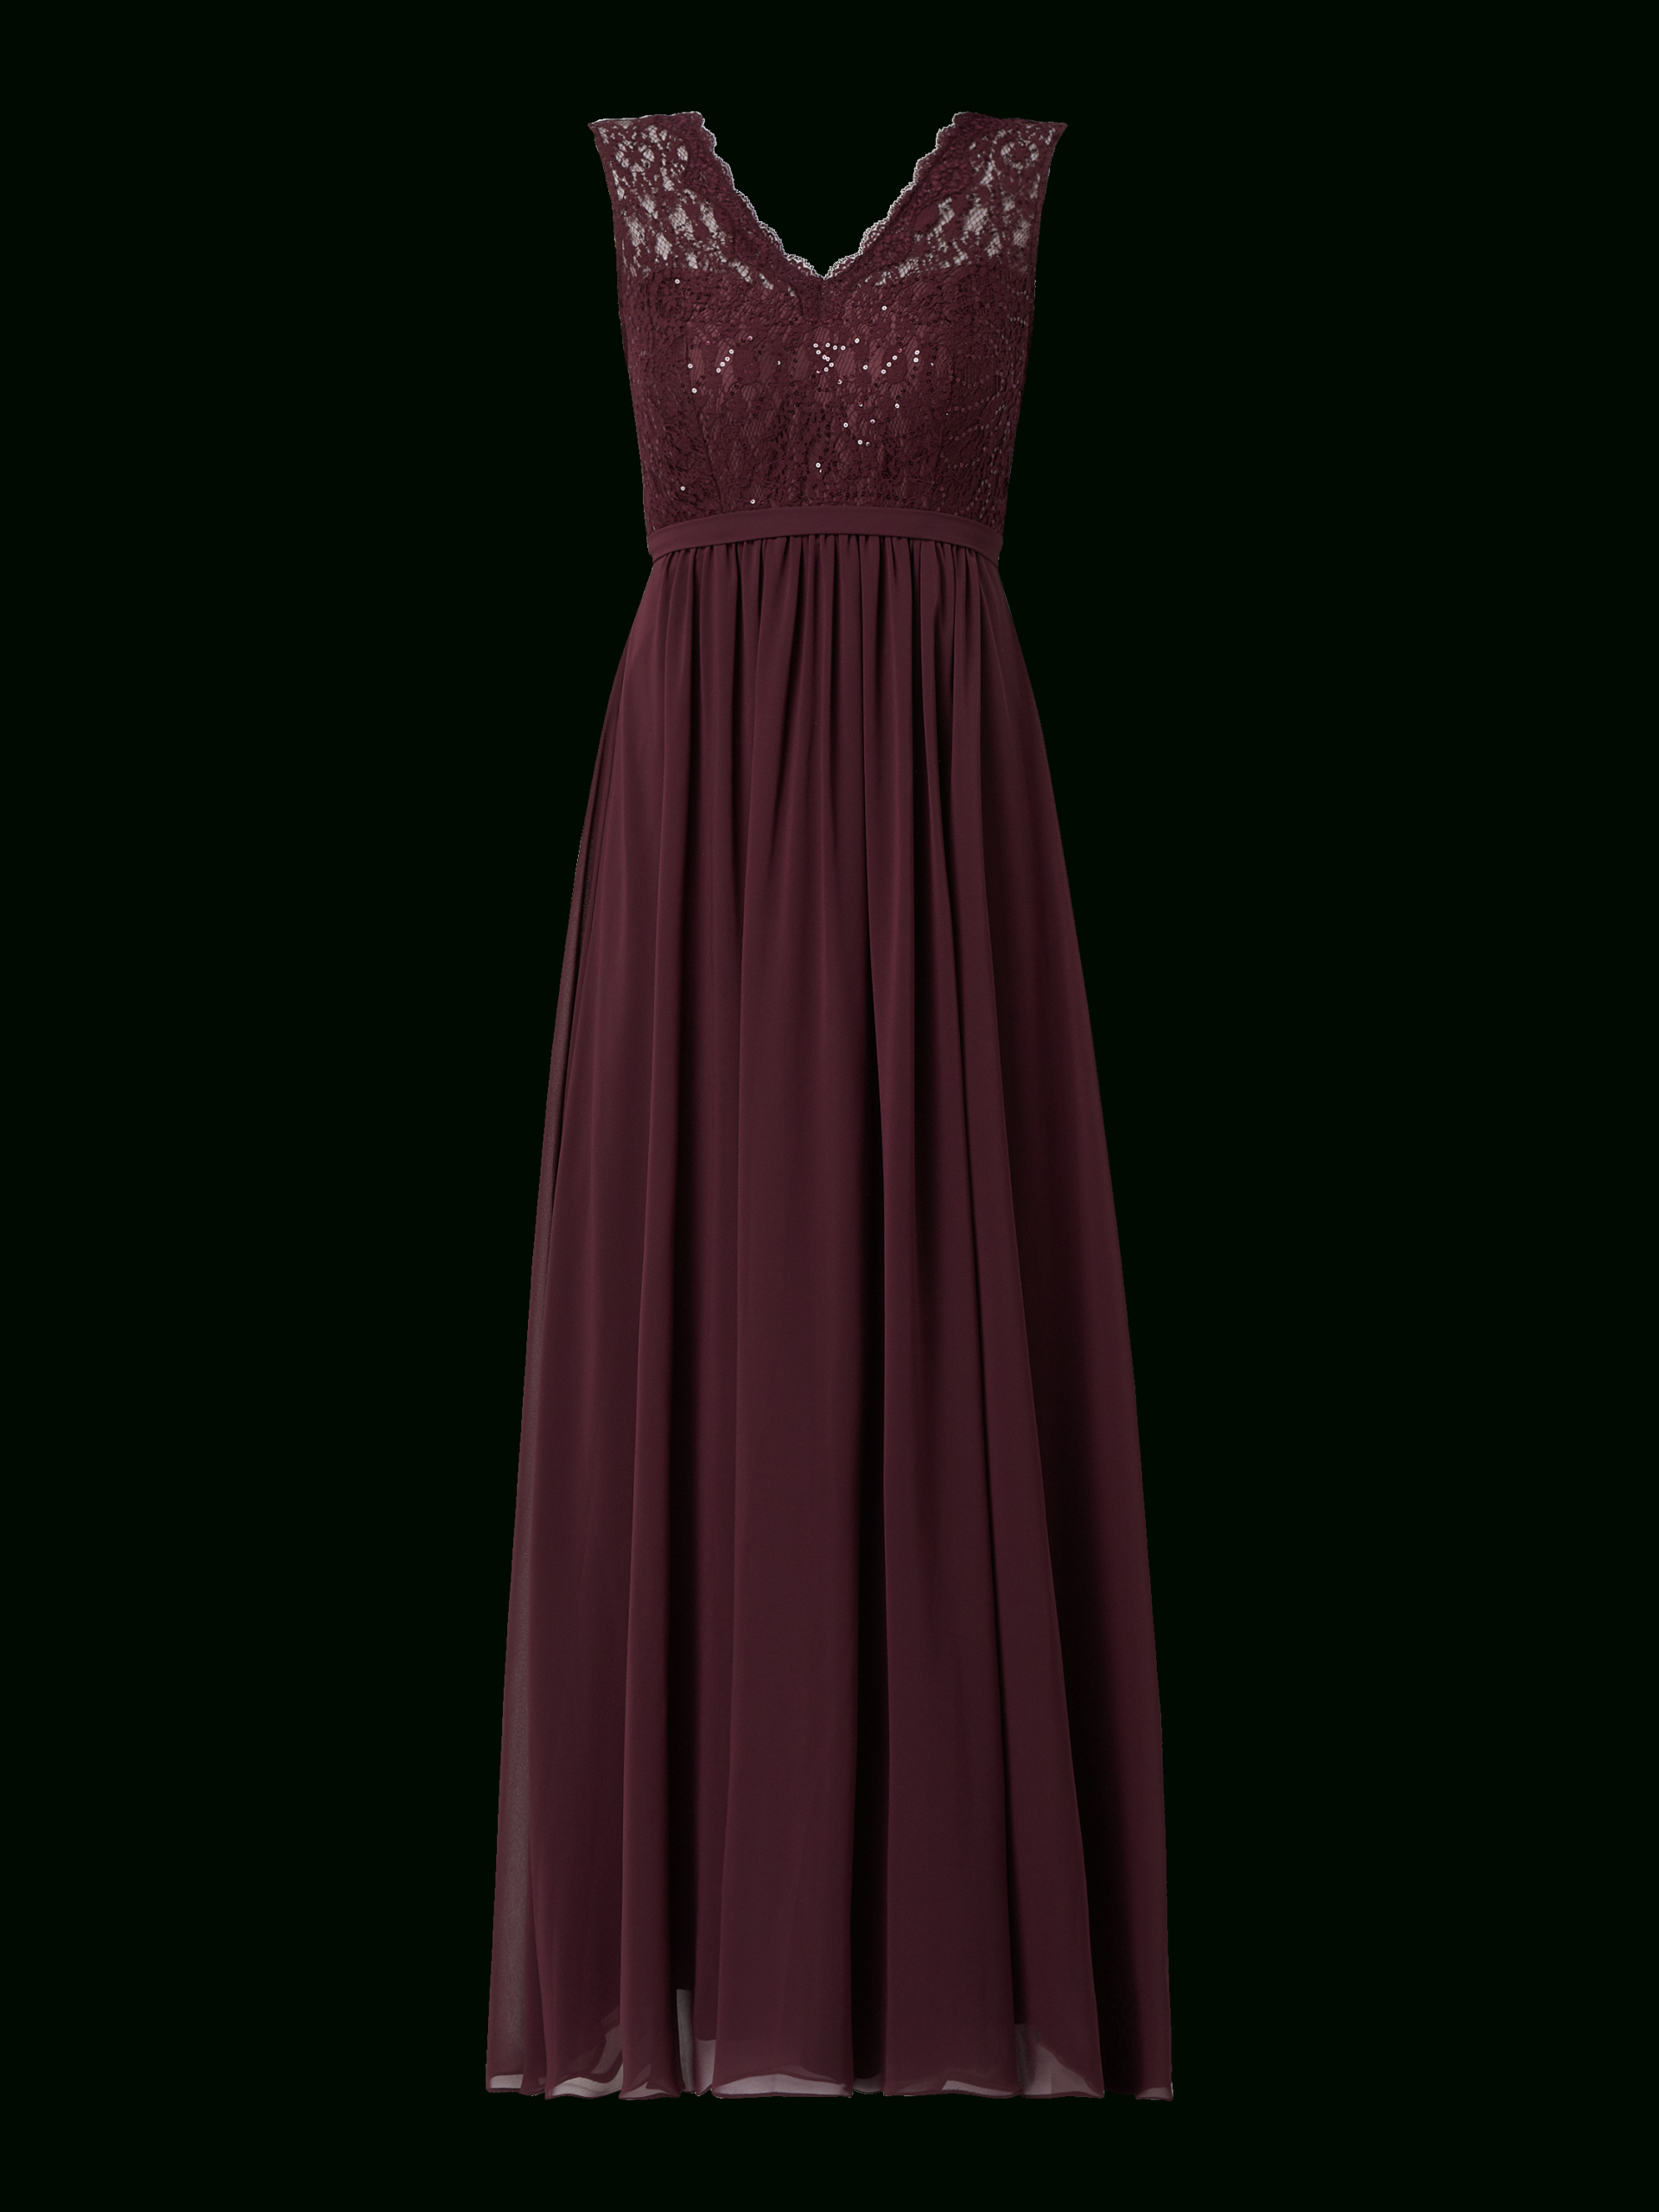 formal luxurius peek und cloppenburg abendkleid galerie